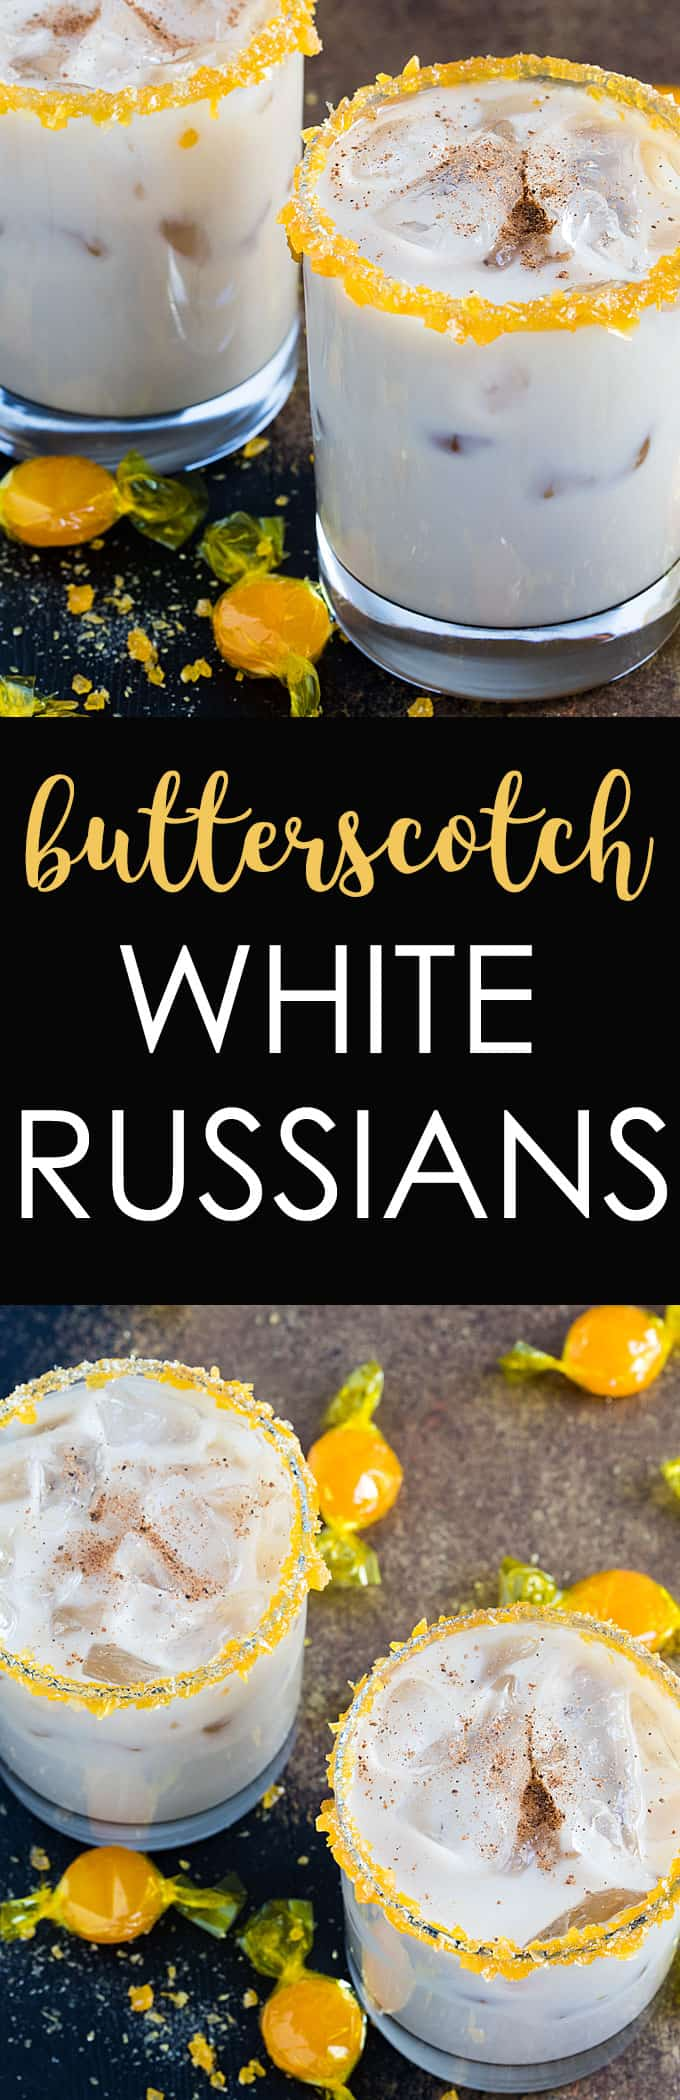 A two image vertical collage of butterscotch white russians with overlay text in the center.